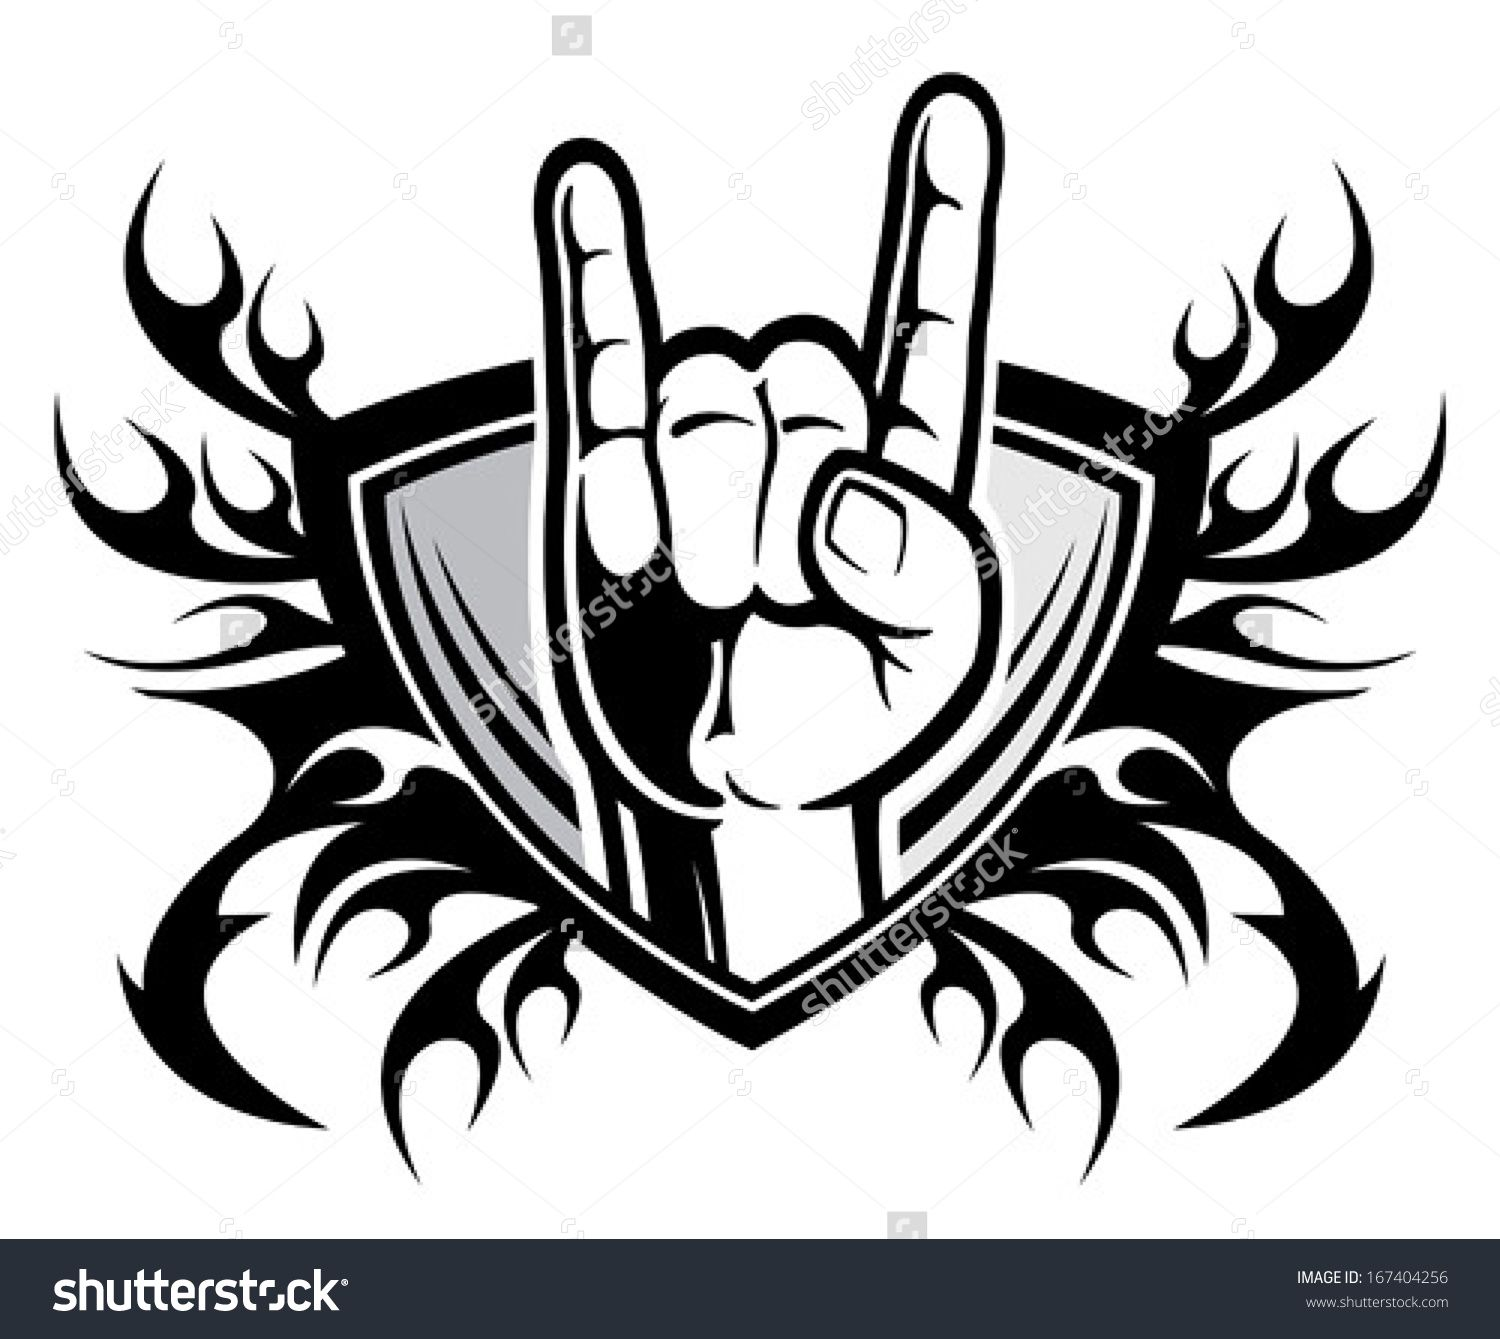 Rock and roll hand sign metal journal pinterest rock rock and roll hand sign buycottarizona